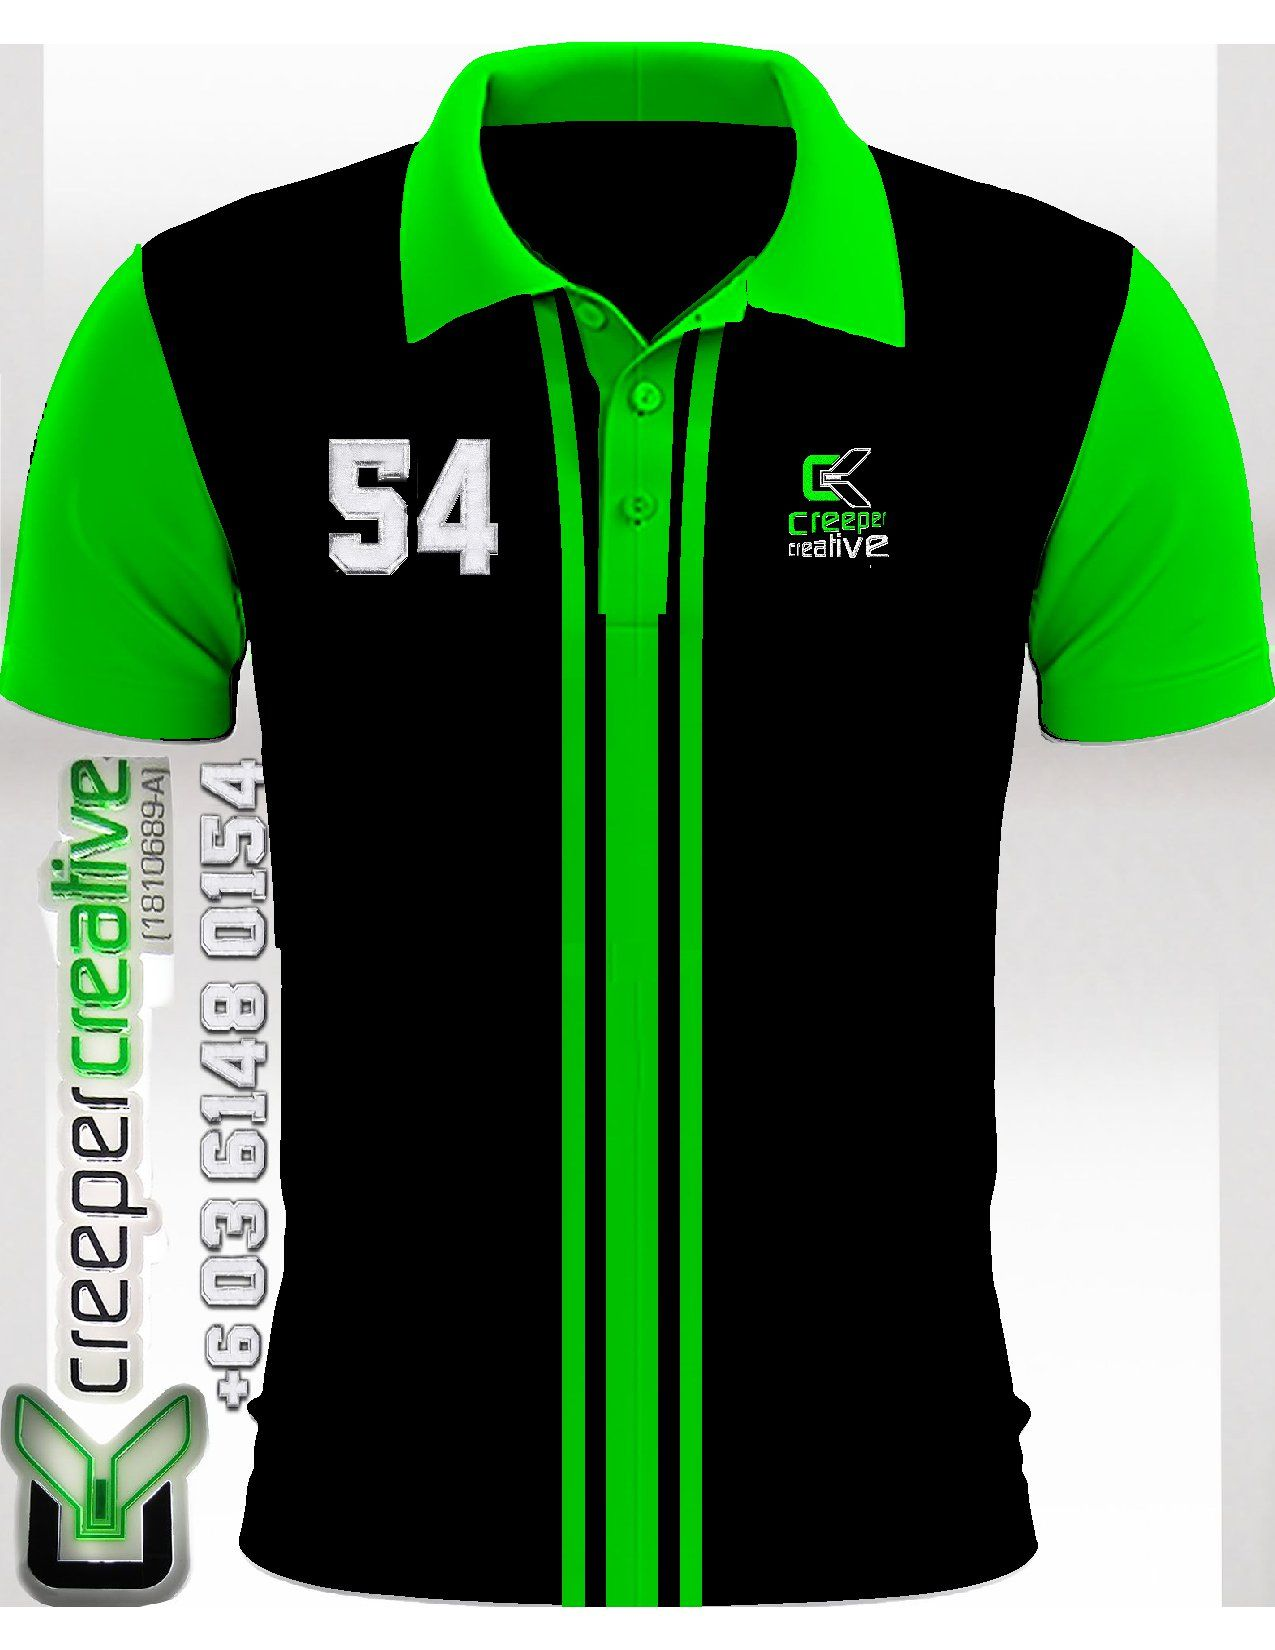 Custom Embroidery Designs T Shirts Embroidery And Printing Clothing